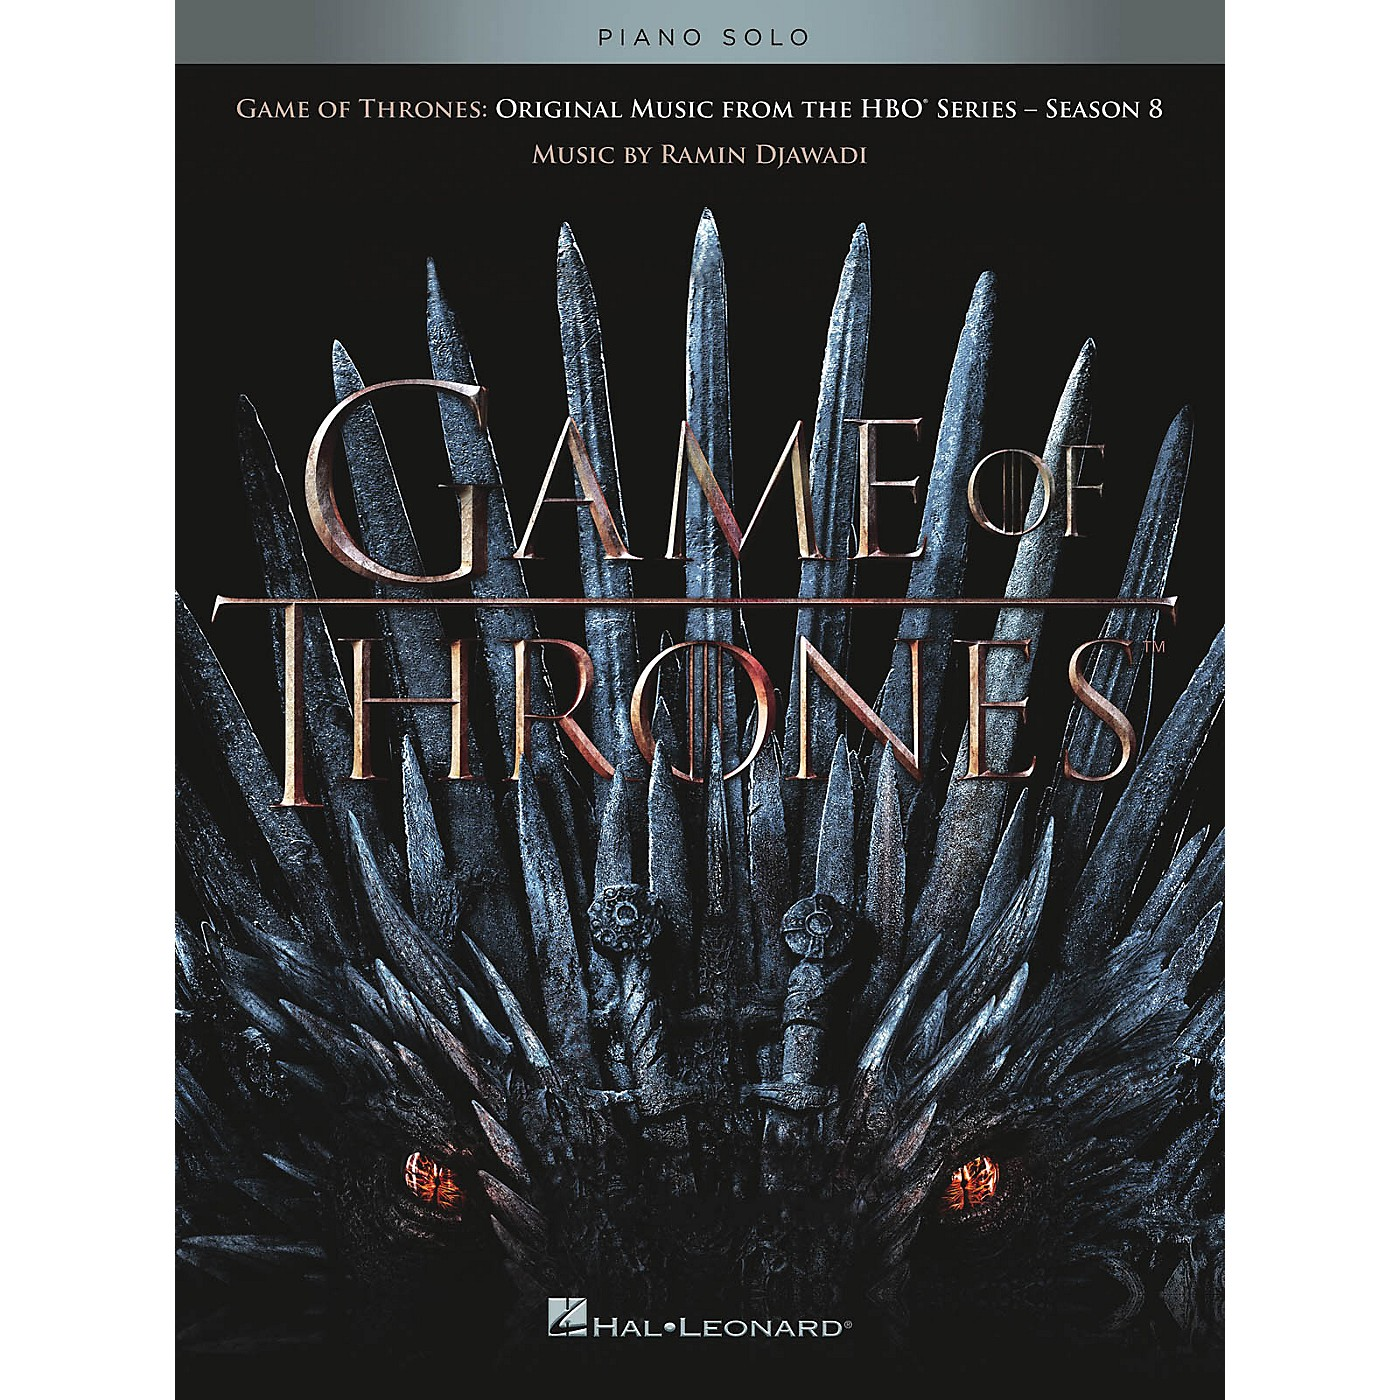 Hal Leonard Game of Thrones - Season 8 (Original Music from the HBO Series) Piano Solo Songbook thumbnail